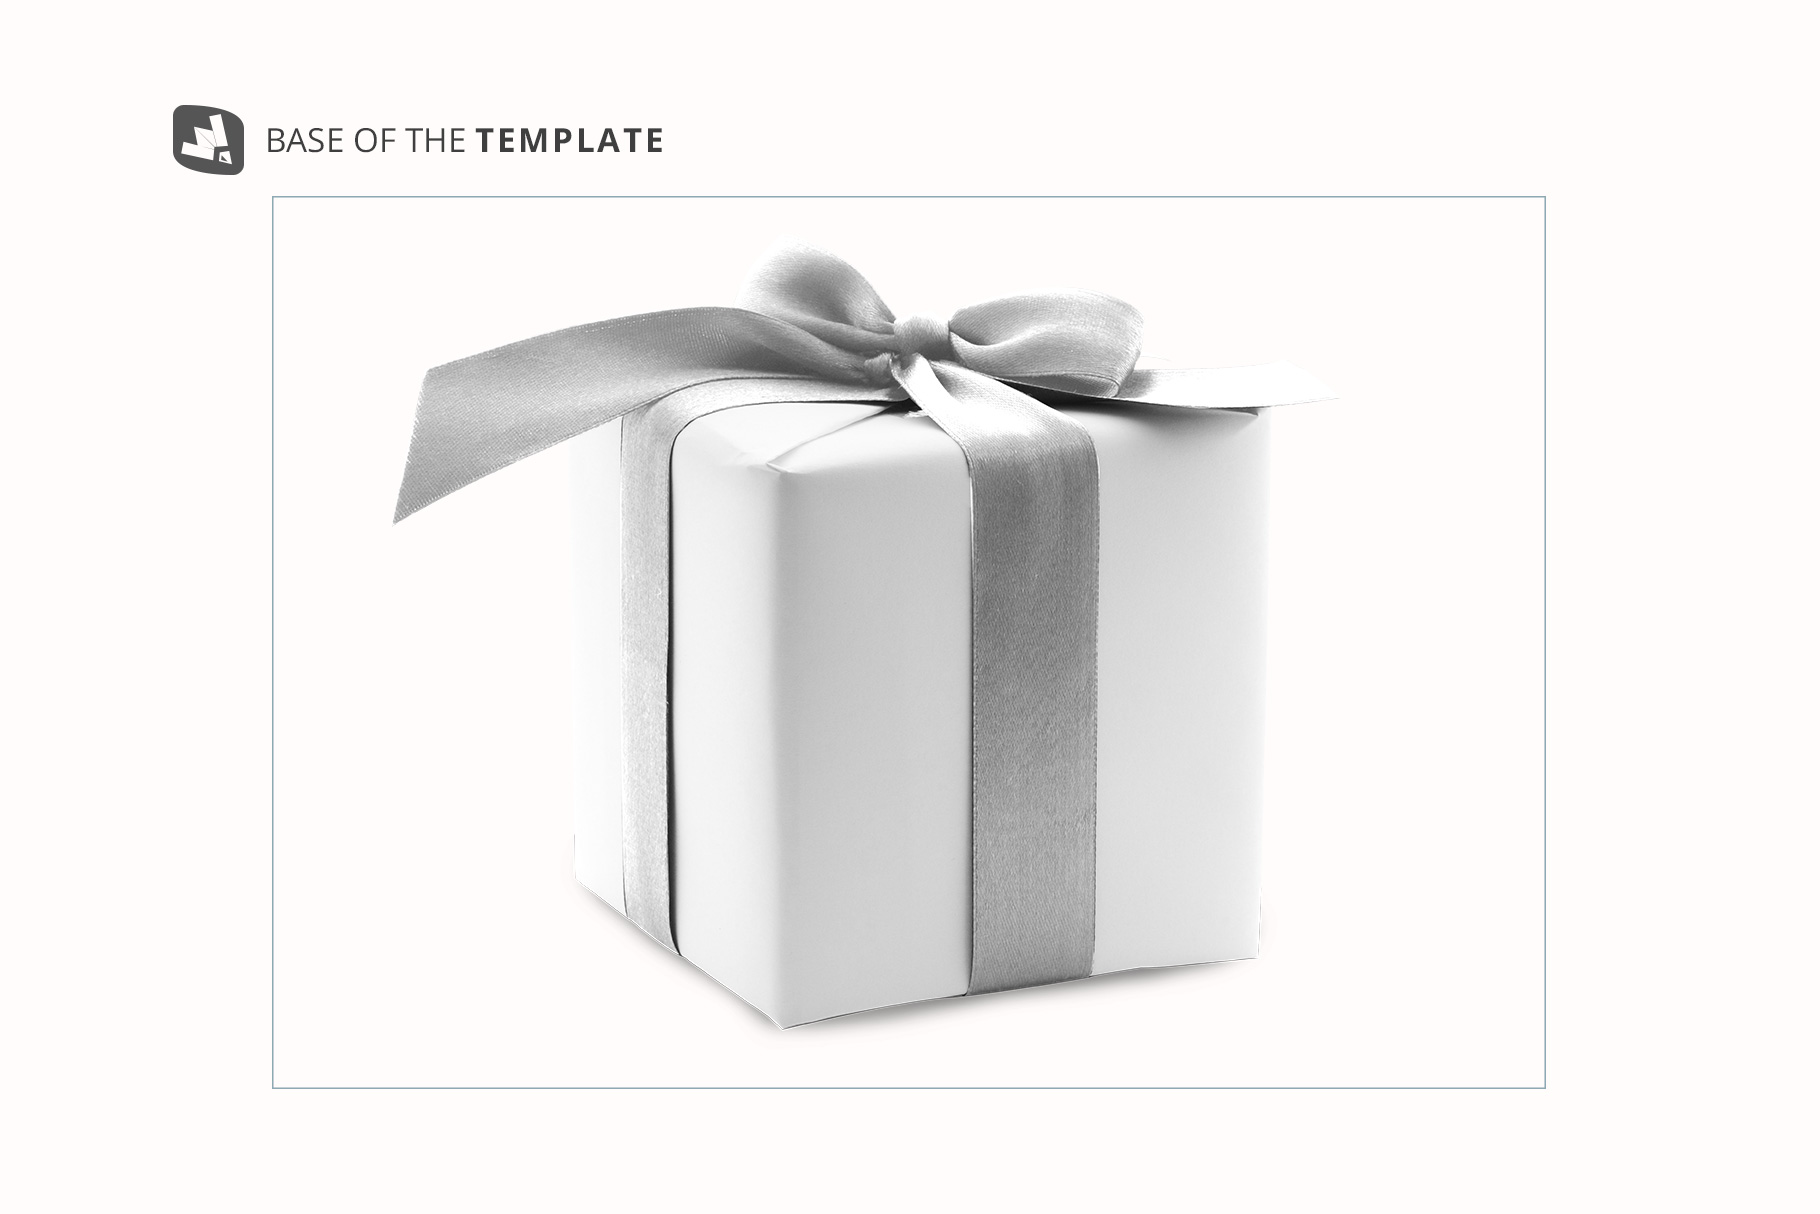 base image of the wrapping paper mockup with box